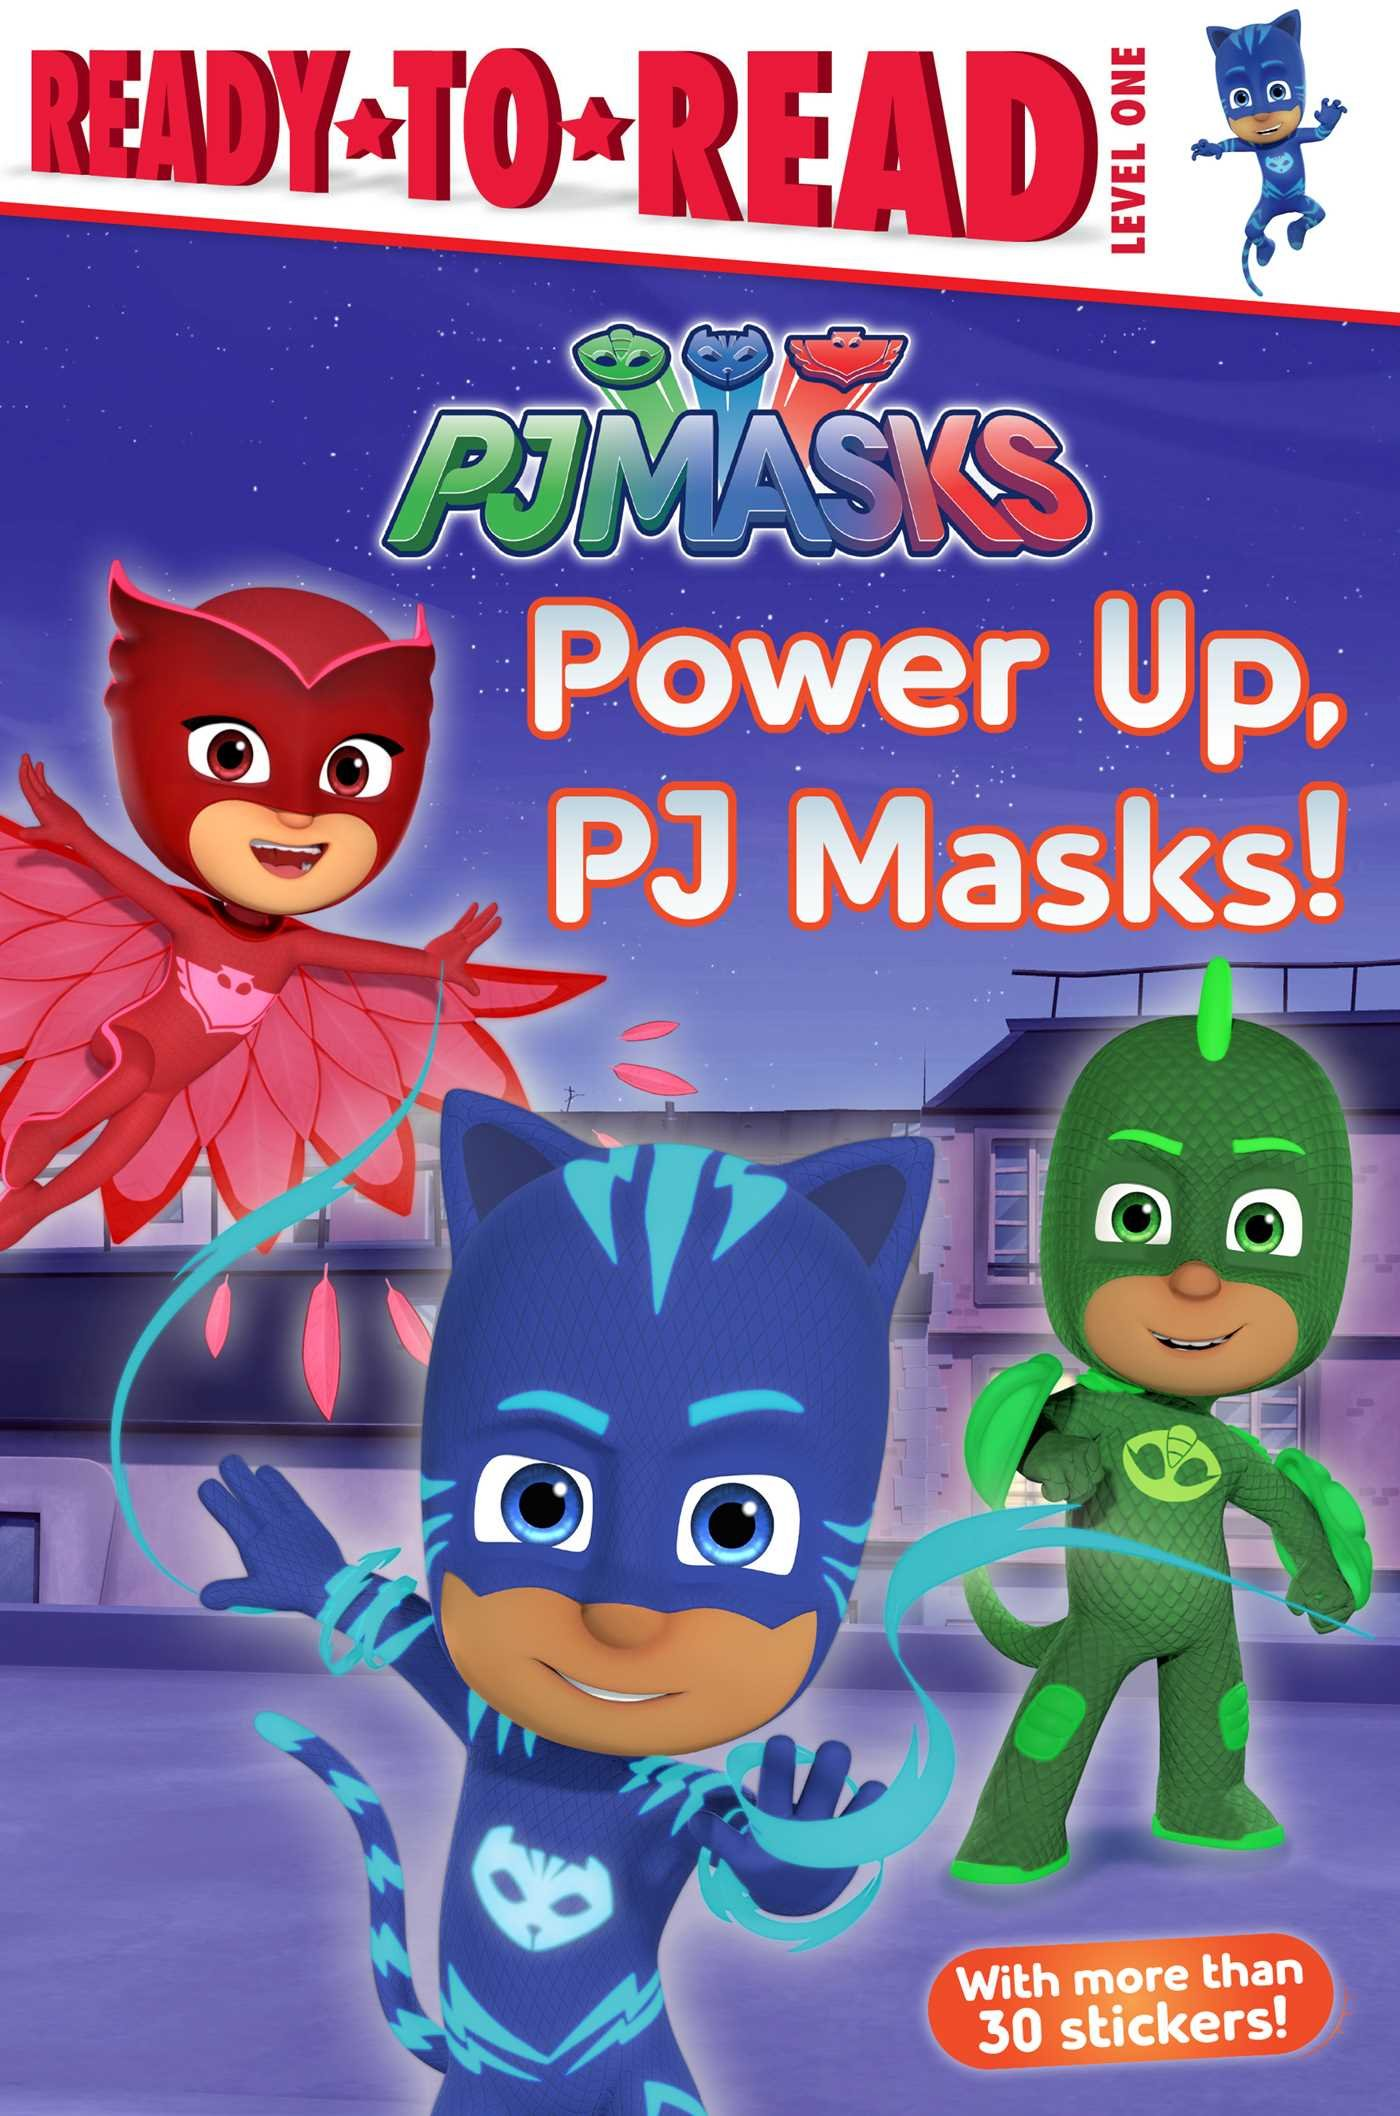 Power Up, Pj Masks! (Ready-to-Read Level 1): Amazon.es: Delphine Finnegan: Libros en idiomas extranjeros